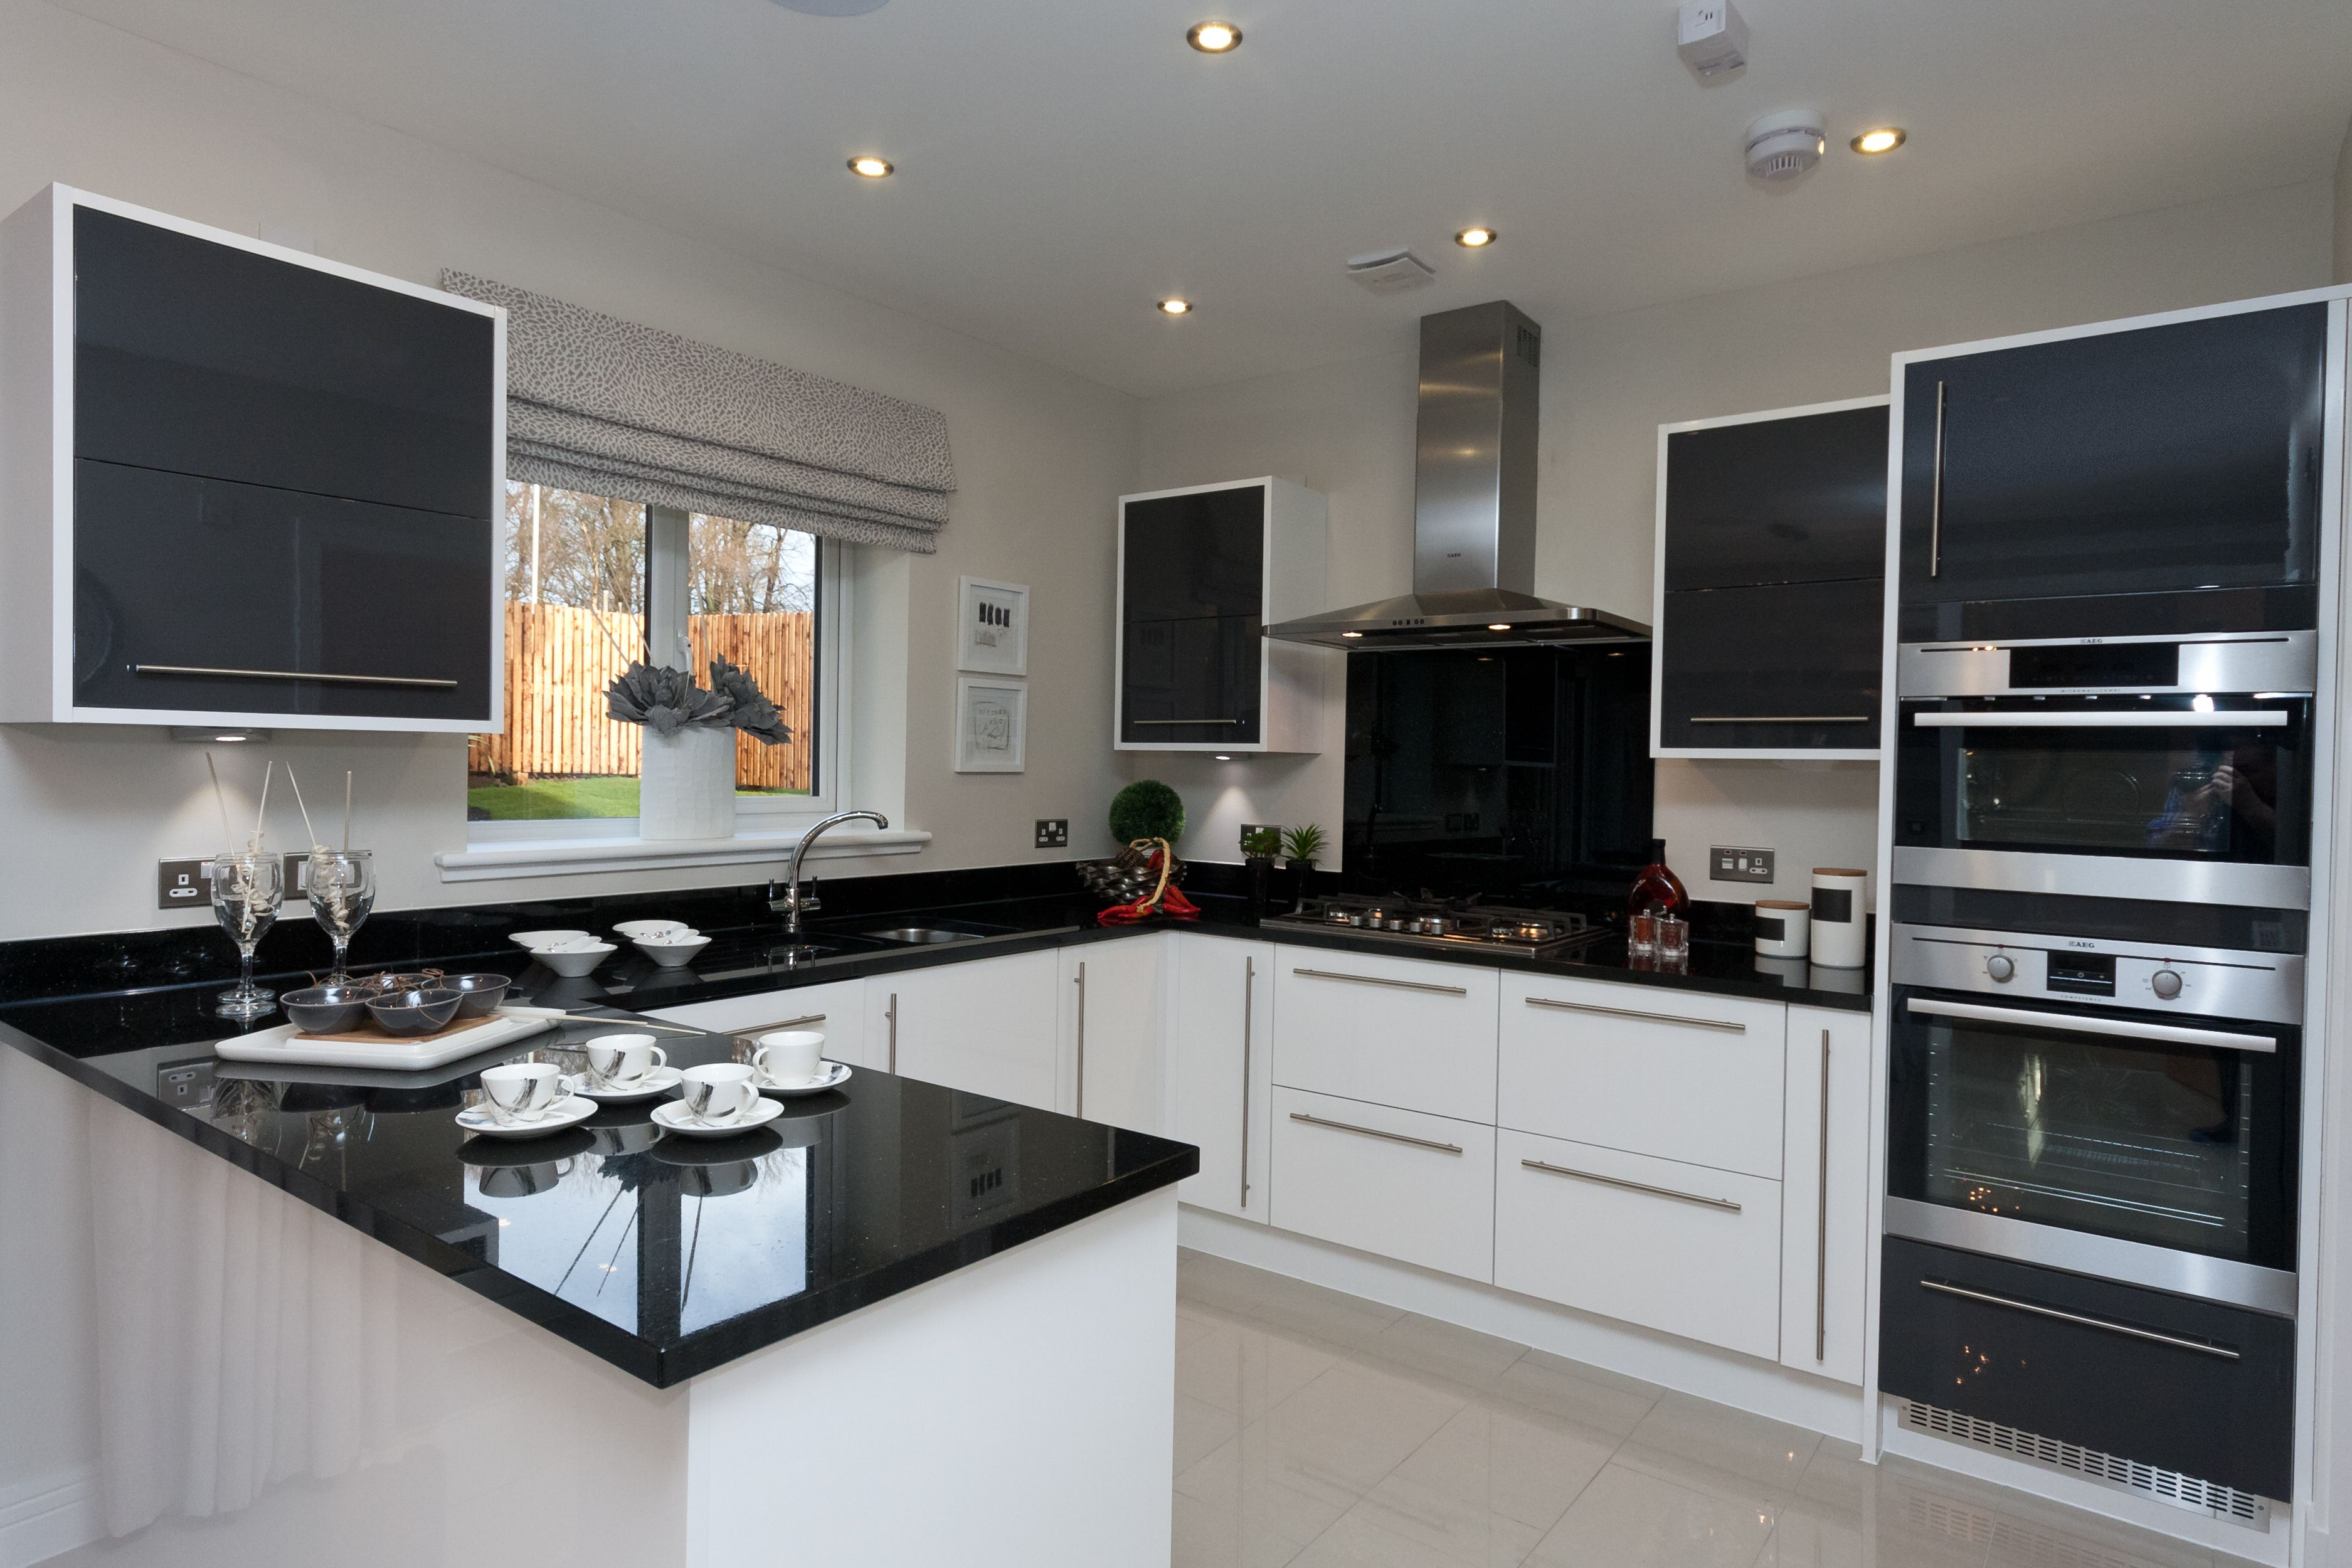 Another Great Example Of A Black And White Kitchen With Silver Accessories Design Modern Small